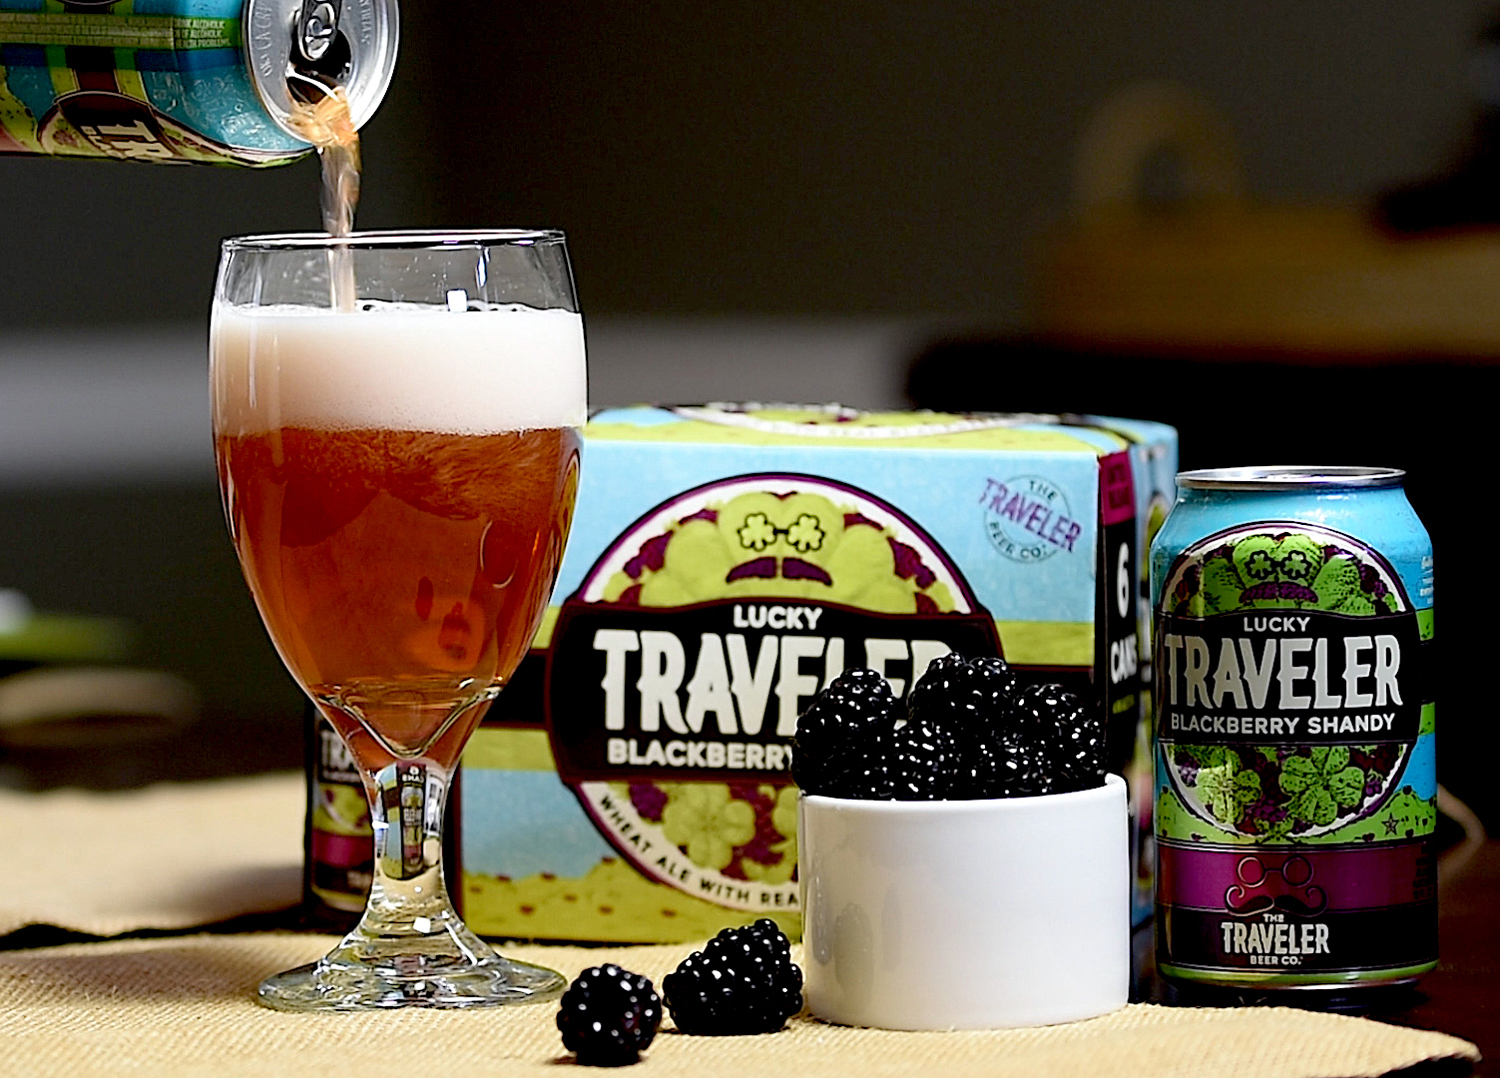 Blackberry Shandy Lucky Traveler Beer Company